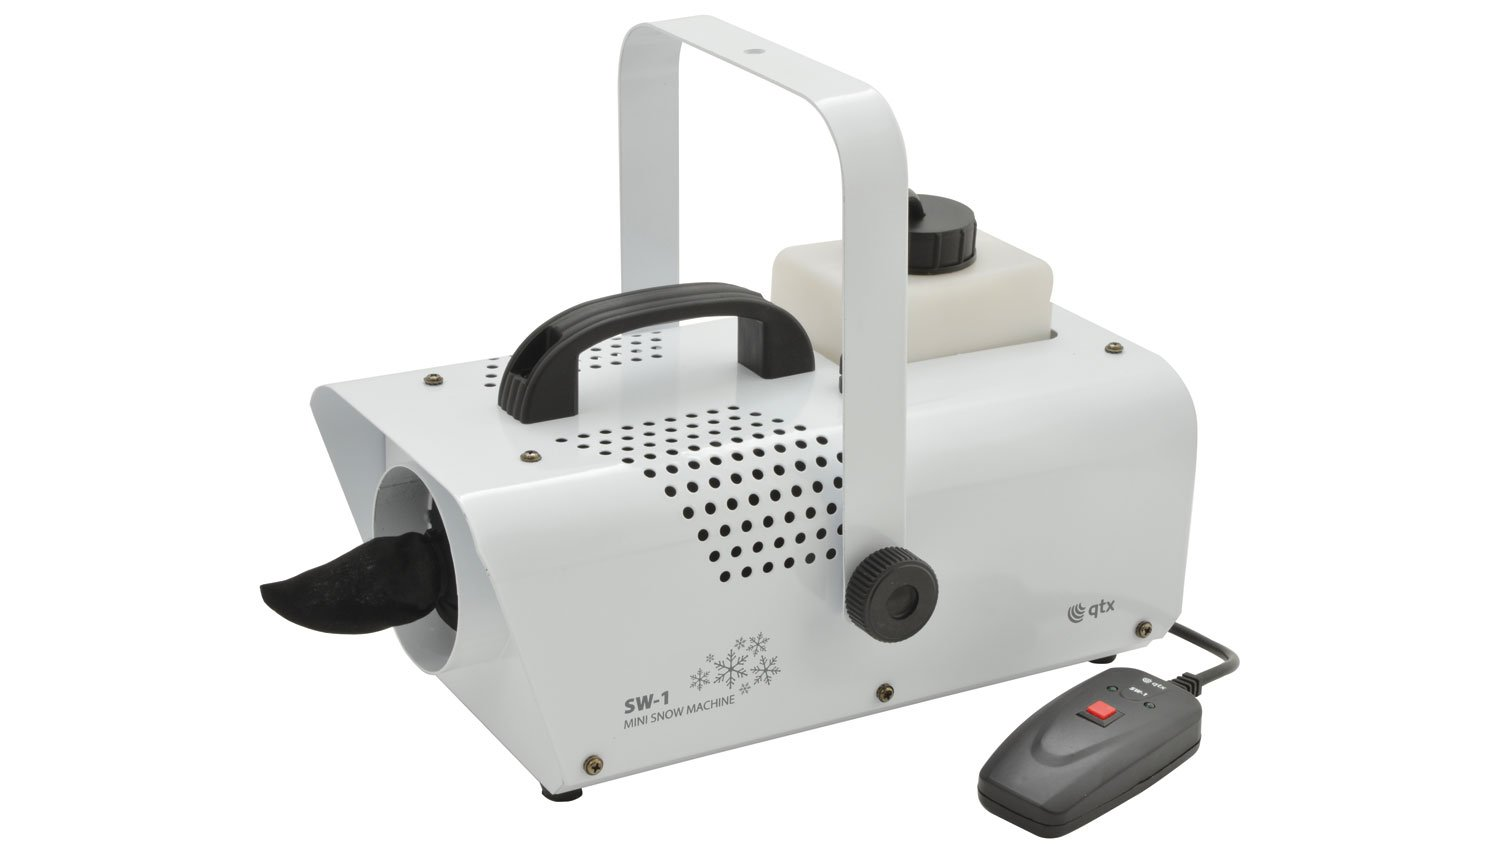 qtx SW1 Mini Snow Machine SW-1